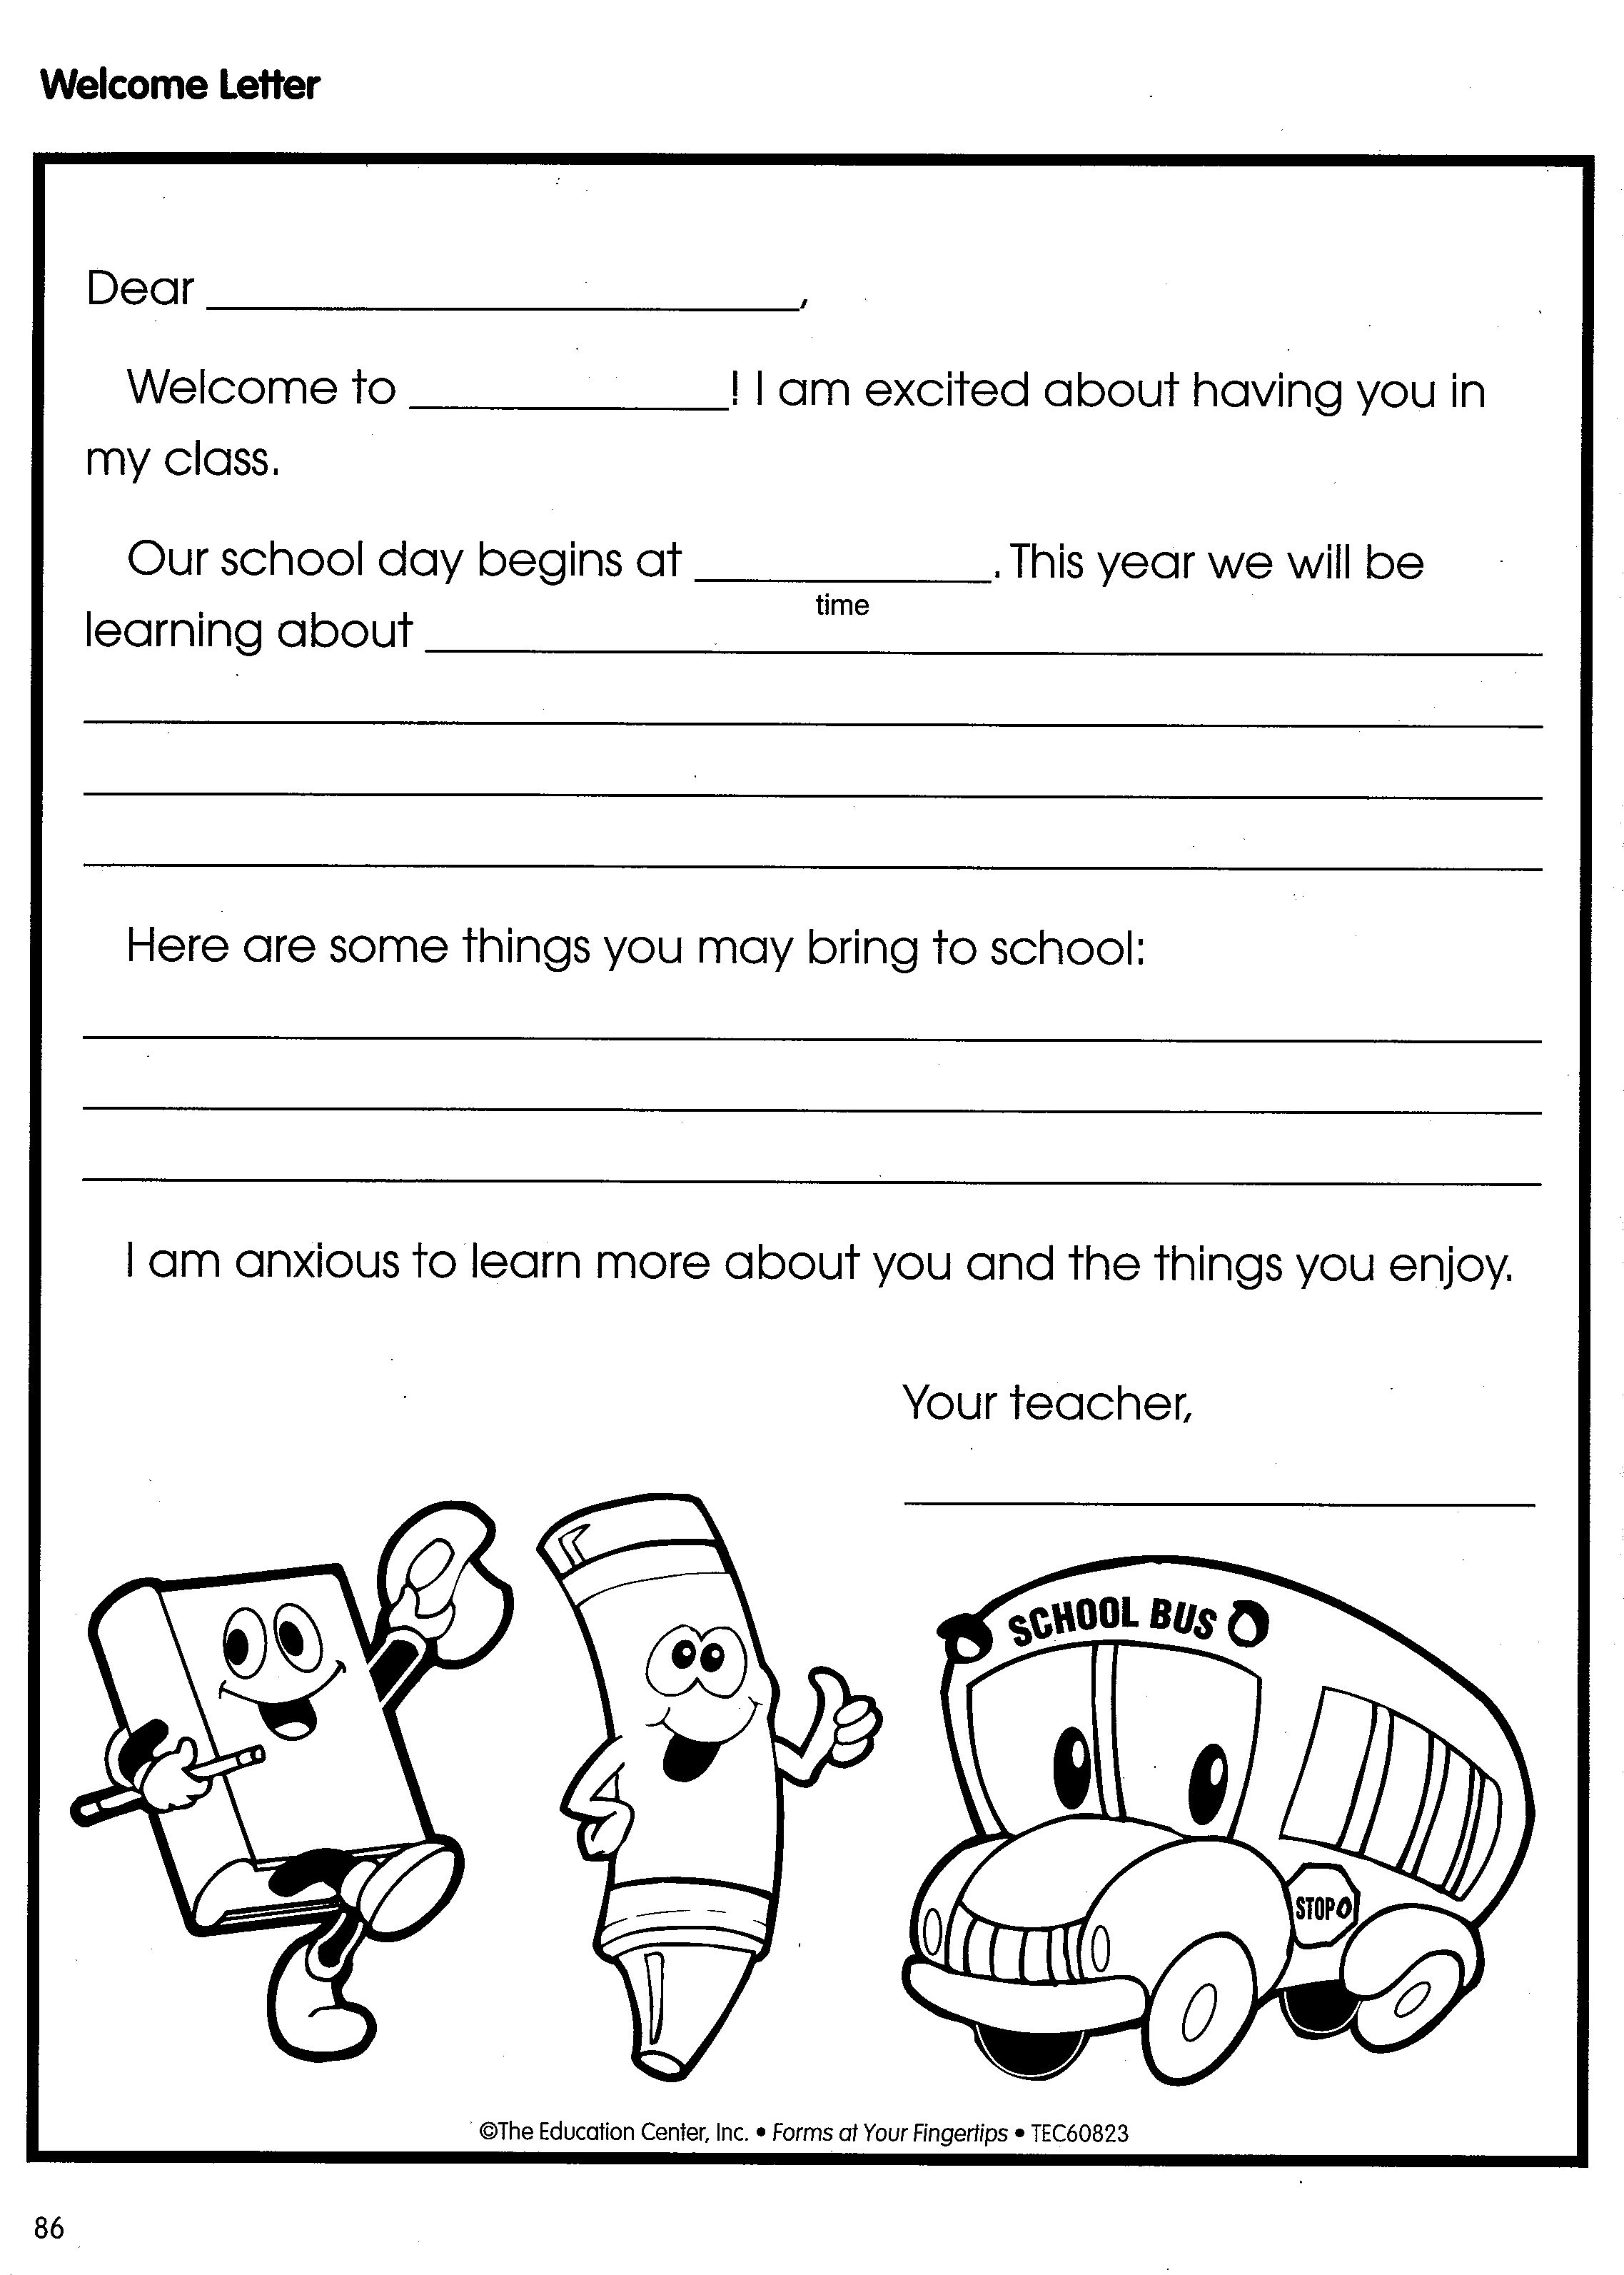 Pin By Jessica Mills On Pre K Form Ideas